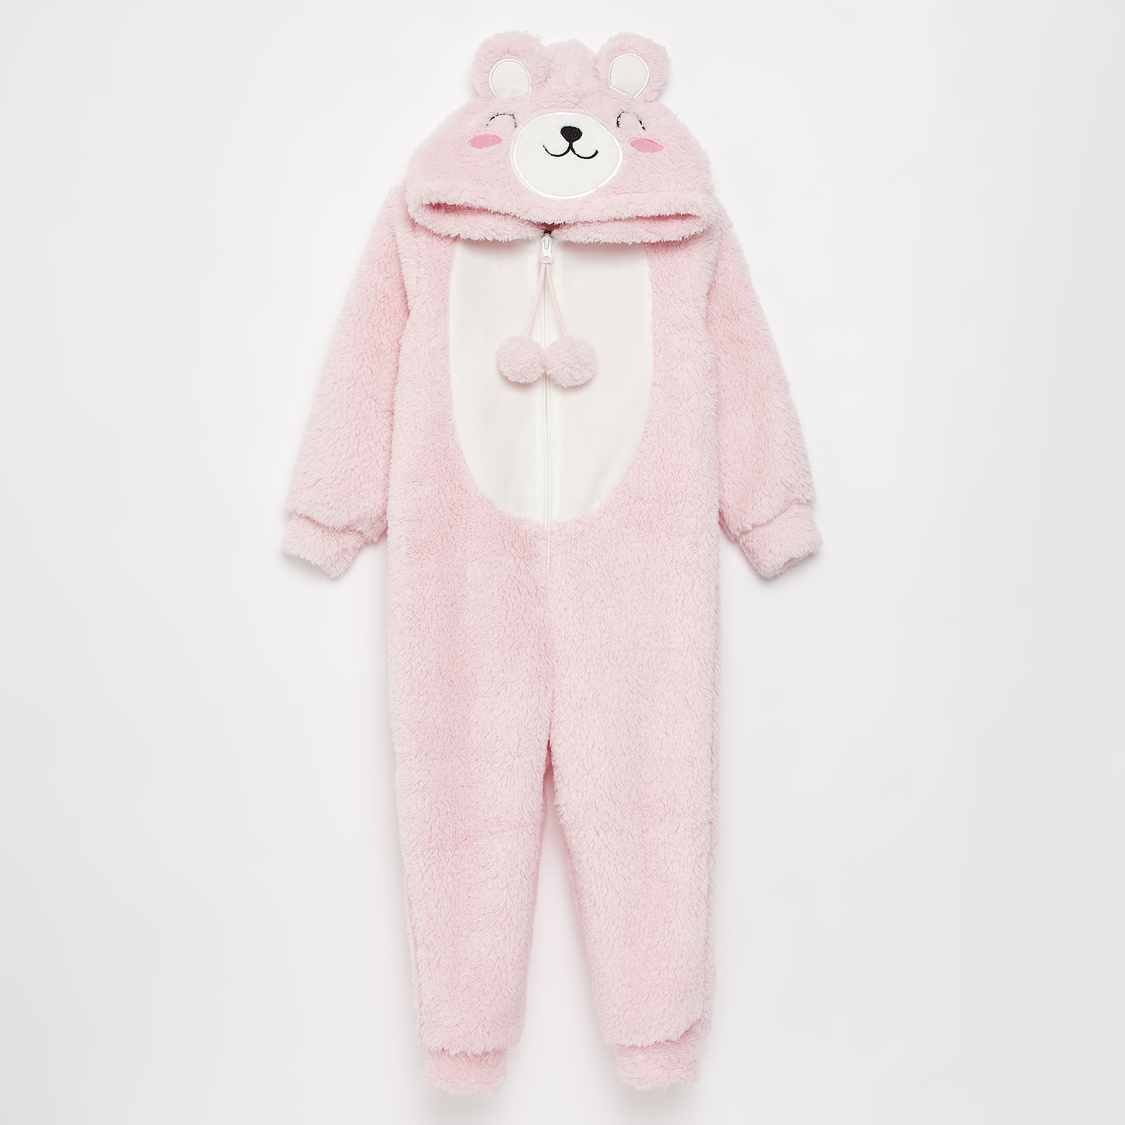 Bear Applique Hooded Onesie with Long Sleeves and Zipper